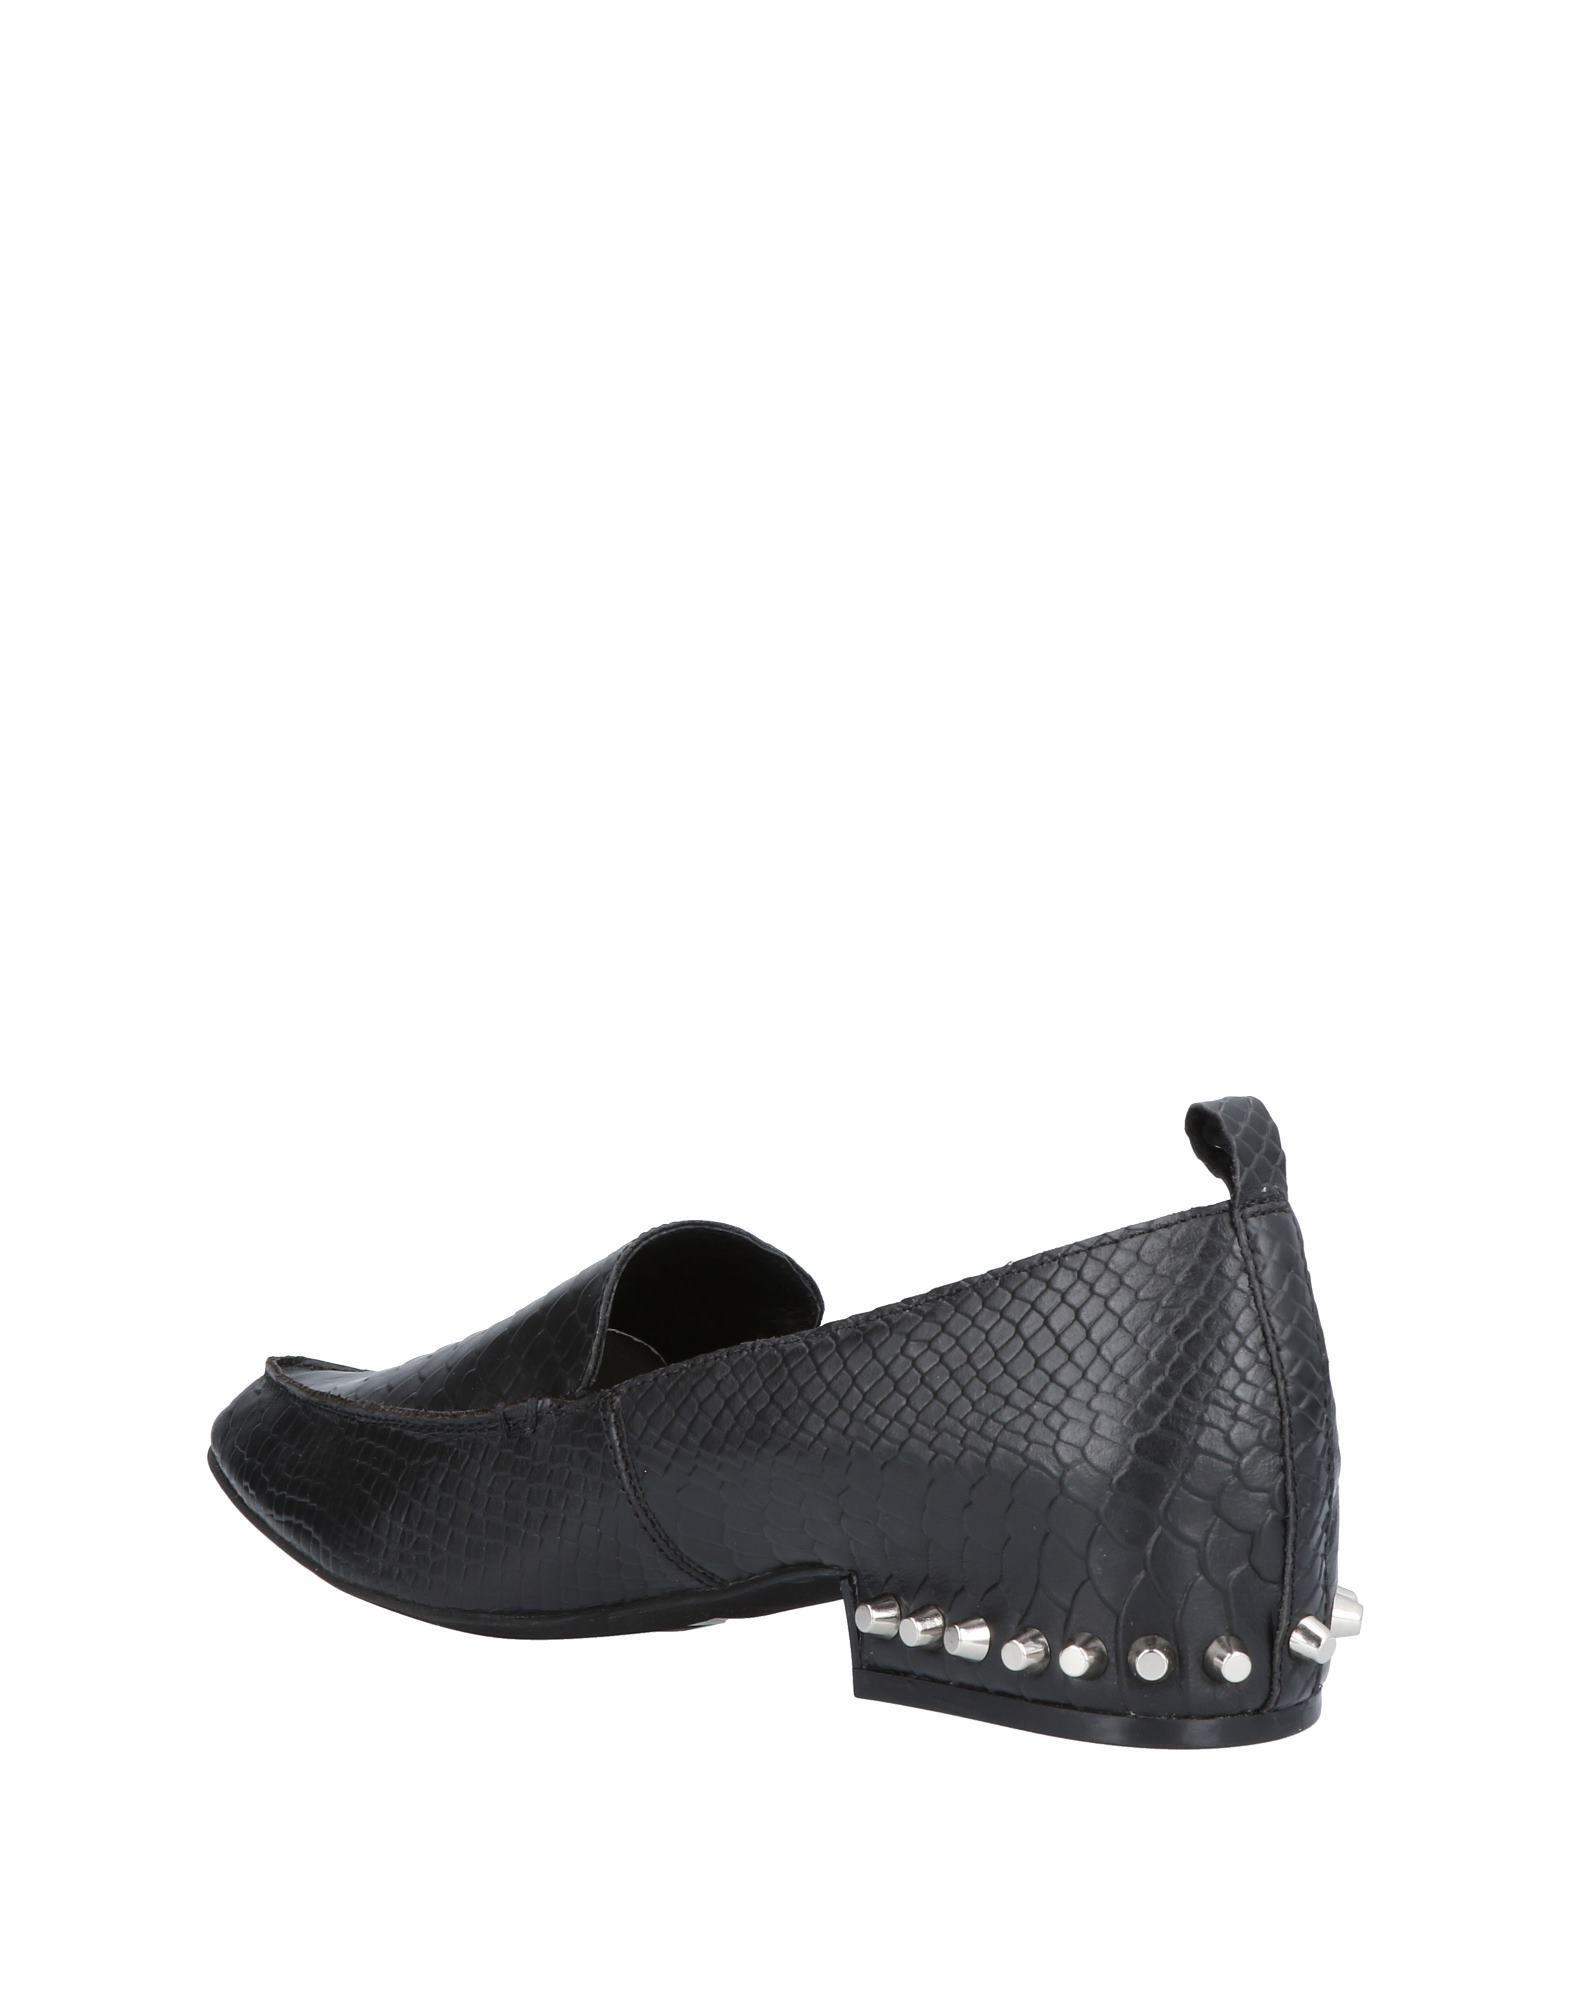 Jeffrey Campbell Black Calf Leather Studded Loafers